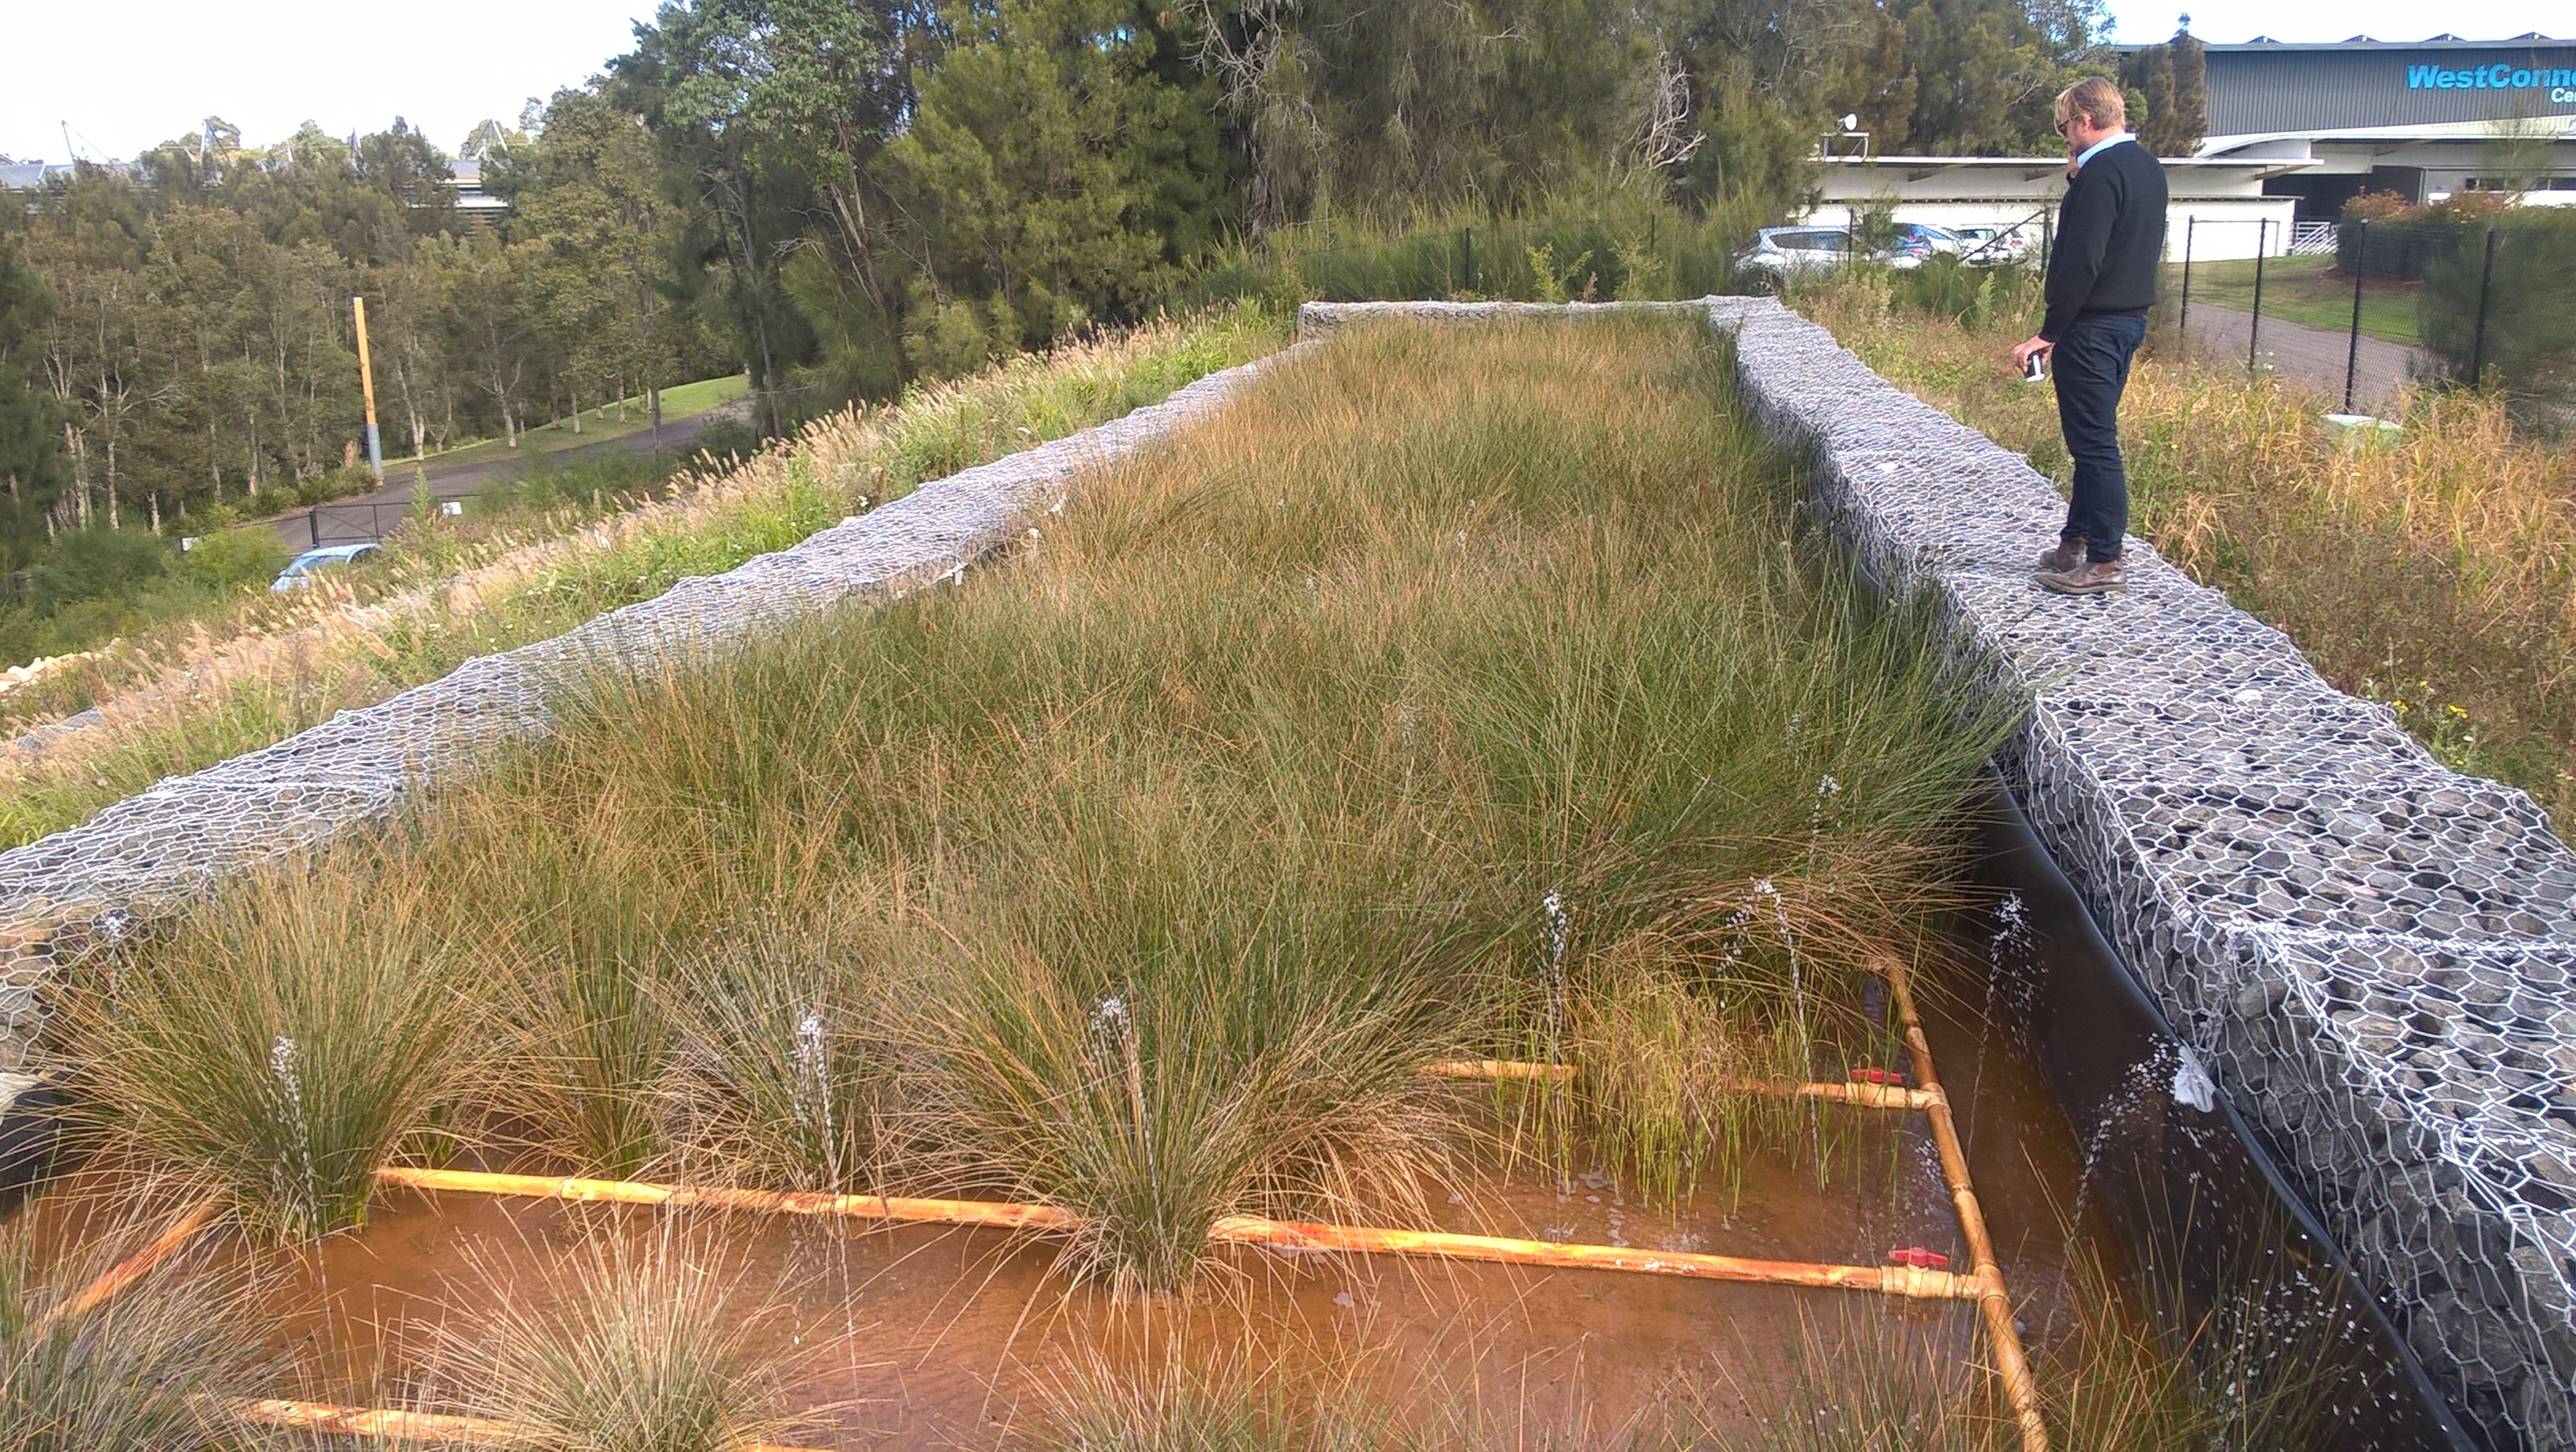 Sydney Olympic Park – Leachate Treatment Wetland and Irrigation